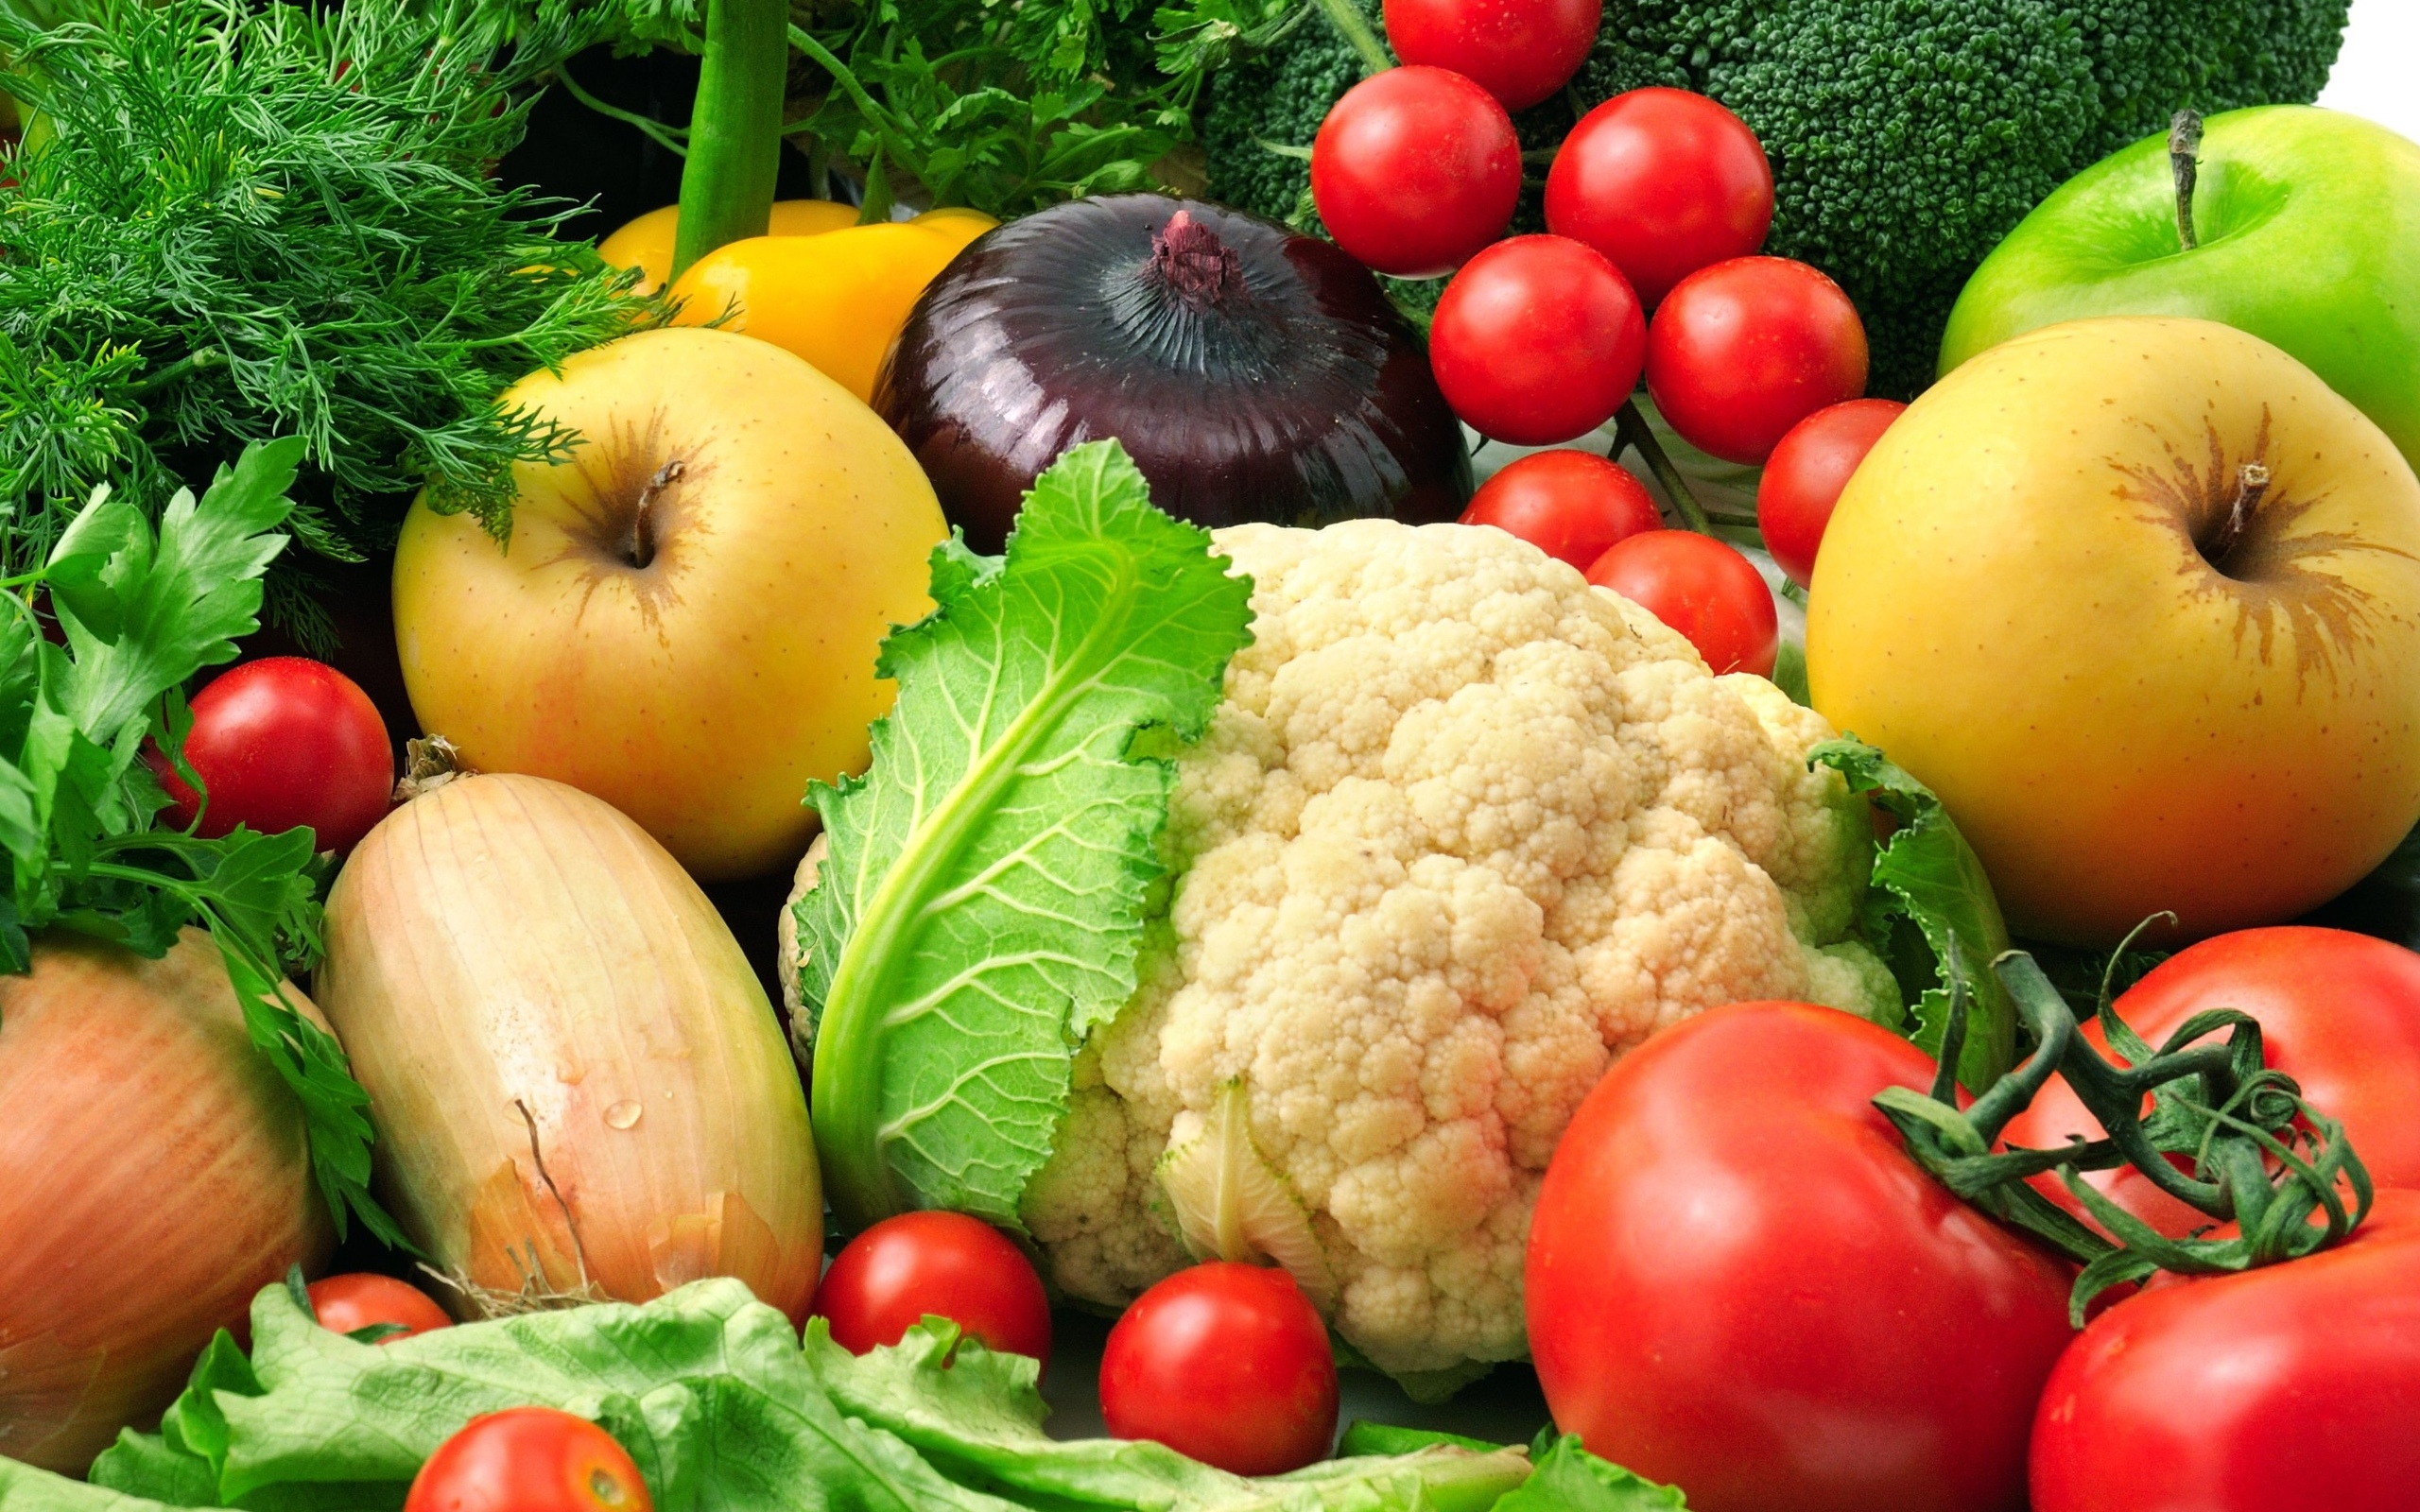 importance of eating fresh fruits and vegetables Gluten-free: most raw foods, including fruits, vegetables, nuts, and seeds, are naturally gluten-free what else you should know eating lots of veggies and fruits helps control blood pressure.